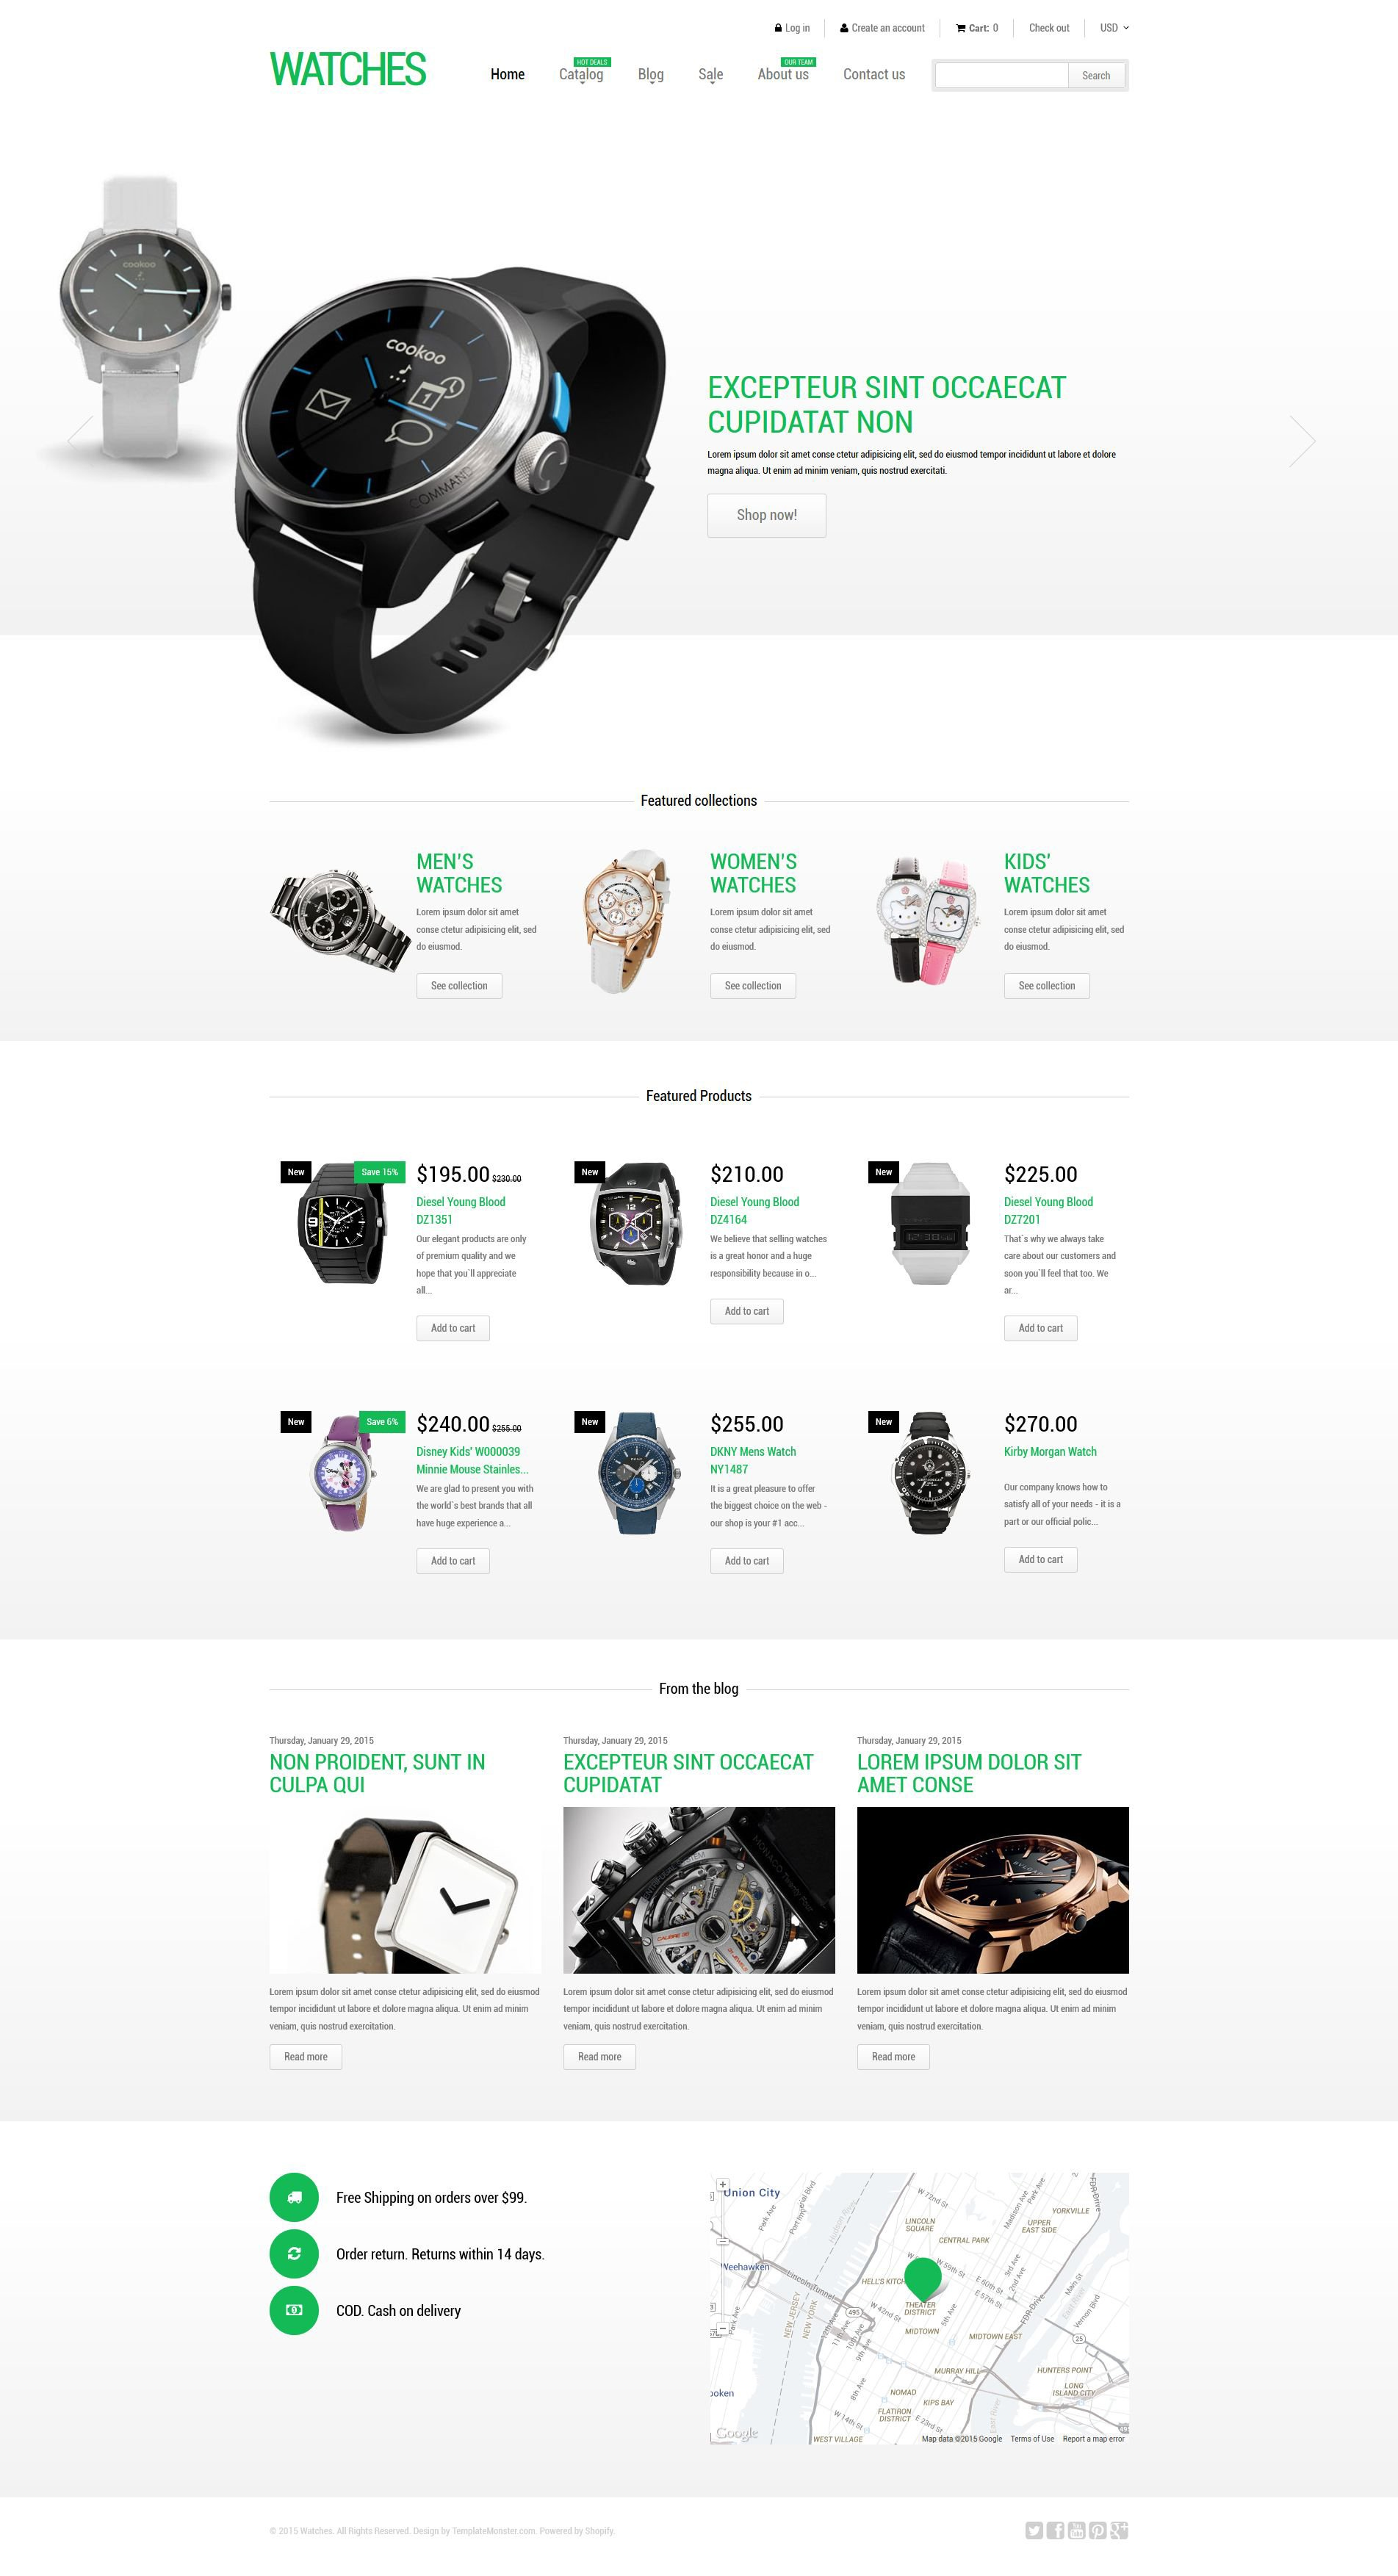 The Watches Online Store Shopify Design 53079, one of the best Shopify themes of its kind (fashion, most popular), also known as watches online store Shopify template, shopping Shopify template, purchase Shopify template, fashion Shopify template, sportive Shopify template, elegance Shopify template, feminine design company Shopify template, producer Shopify template, products Shopify template, pointers Shopify template, collection Shopify template, order Shopify template, history Shopify template, tradition Shopify template, Switzerland Swiss watches Shopify template, Omega Longines Tissot Rolex Chrono Candino clock Shopify template, face and related with watches online store, shopping, purchase, fashion, sportive, elegance, feminine design company, producer, products, pointers, collection, order, history, tradition, Switzerland Swiss watches, Omega Longines Tissot Rolex Chrono Candino clock, face, etc.